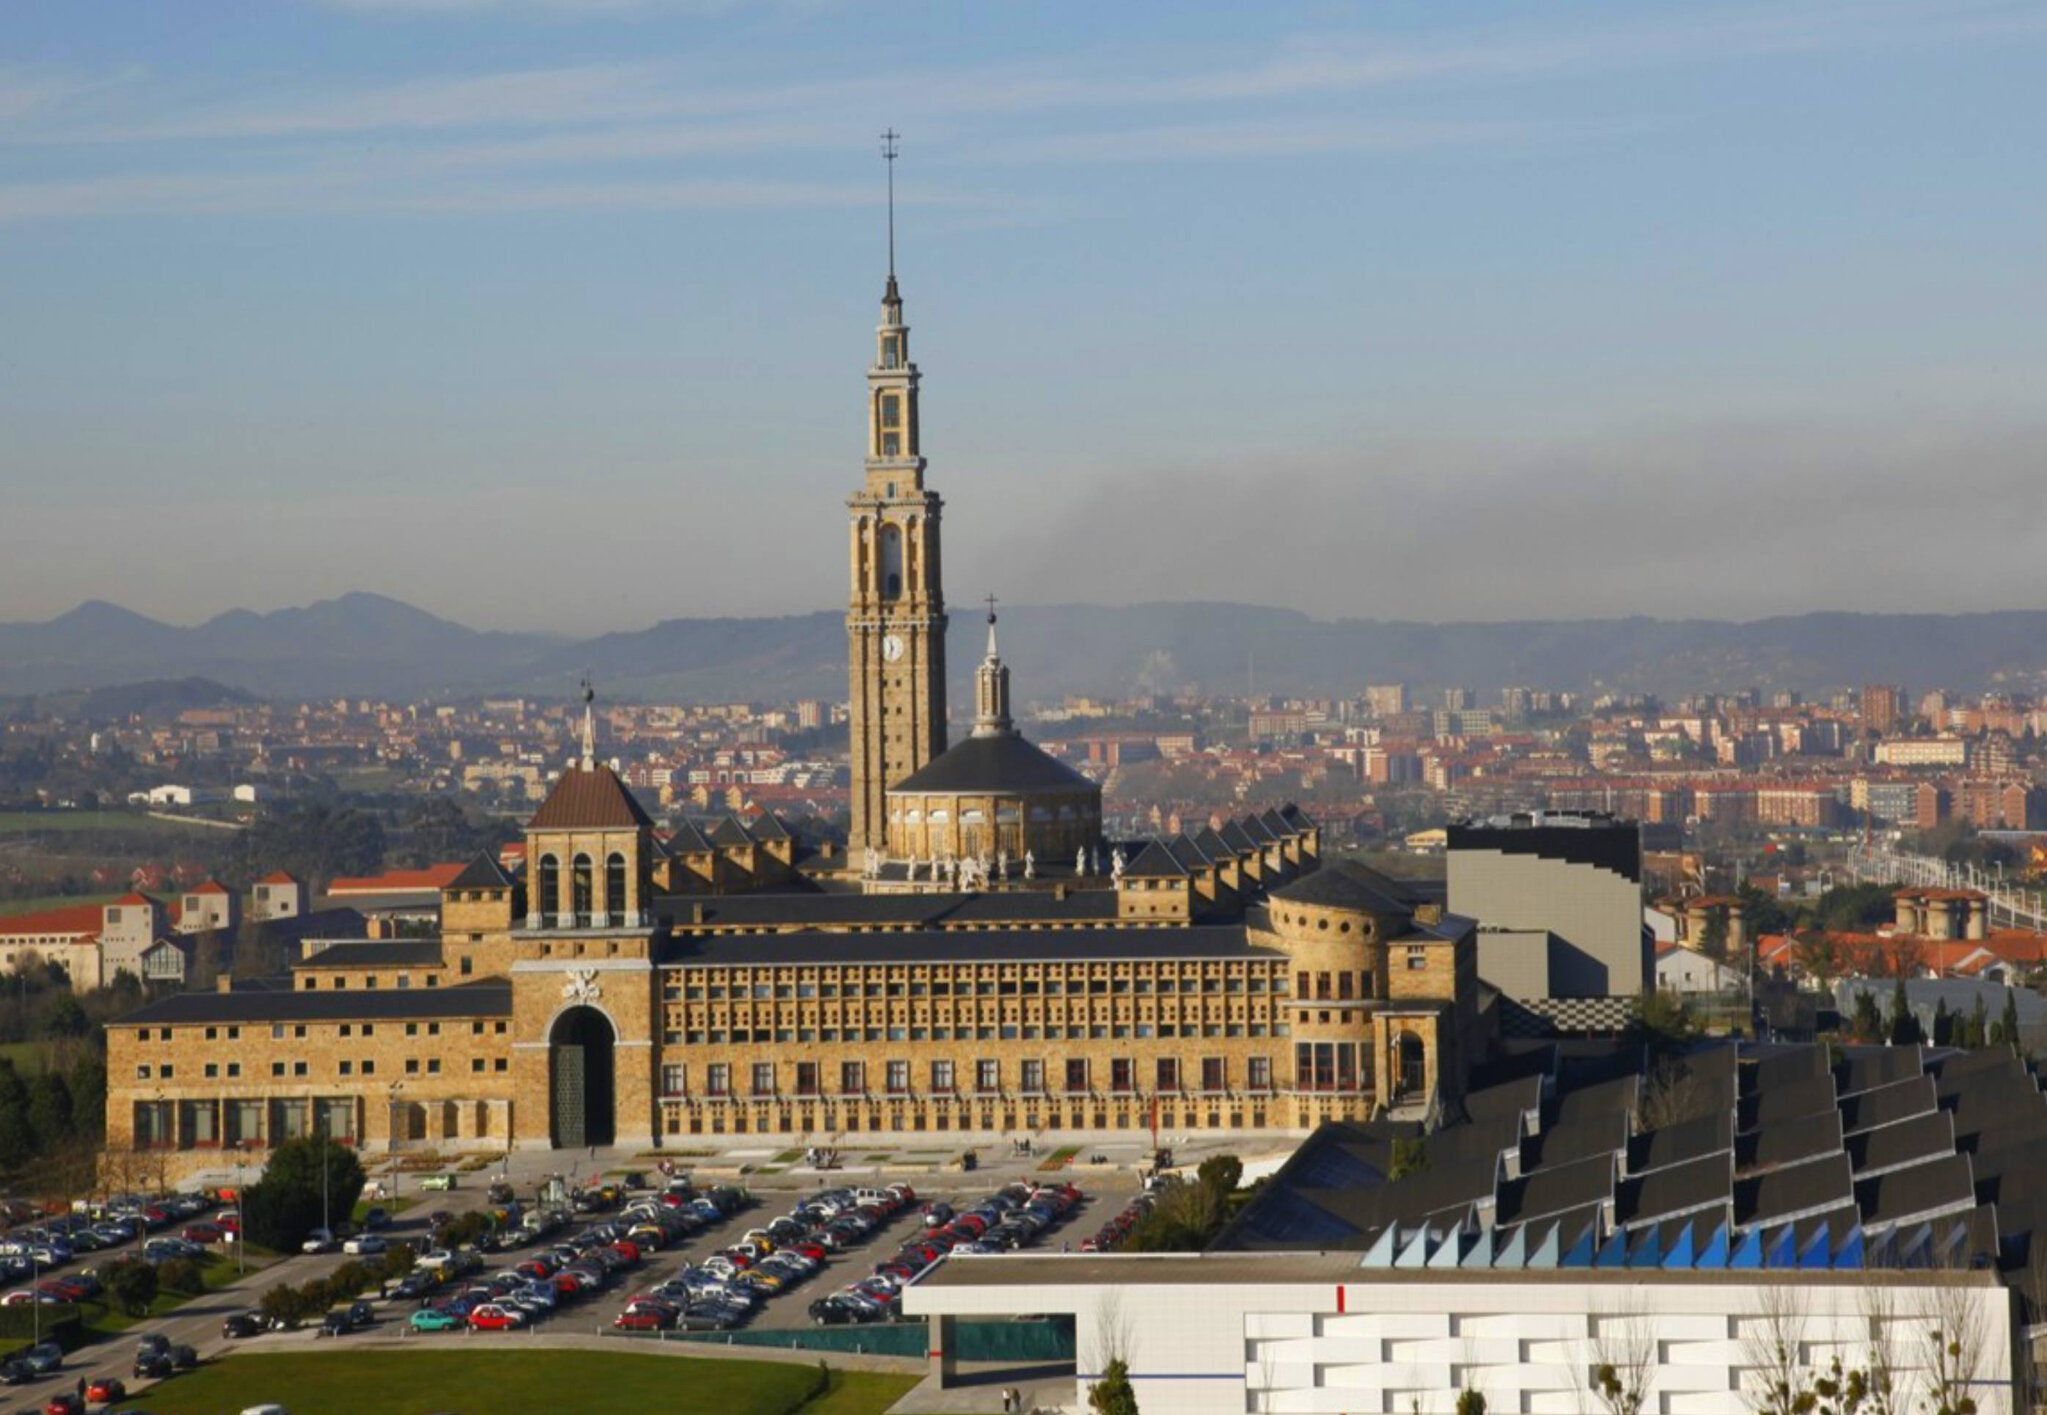 Universidad Laboral à Gijón : l'édifice de tous les records